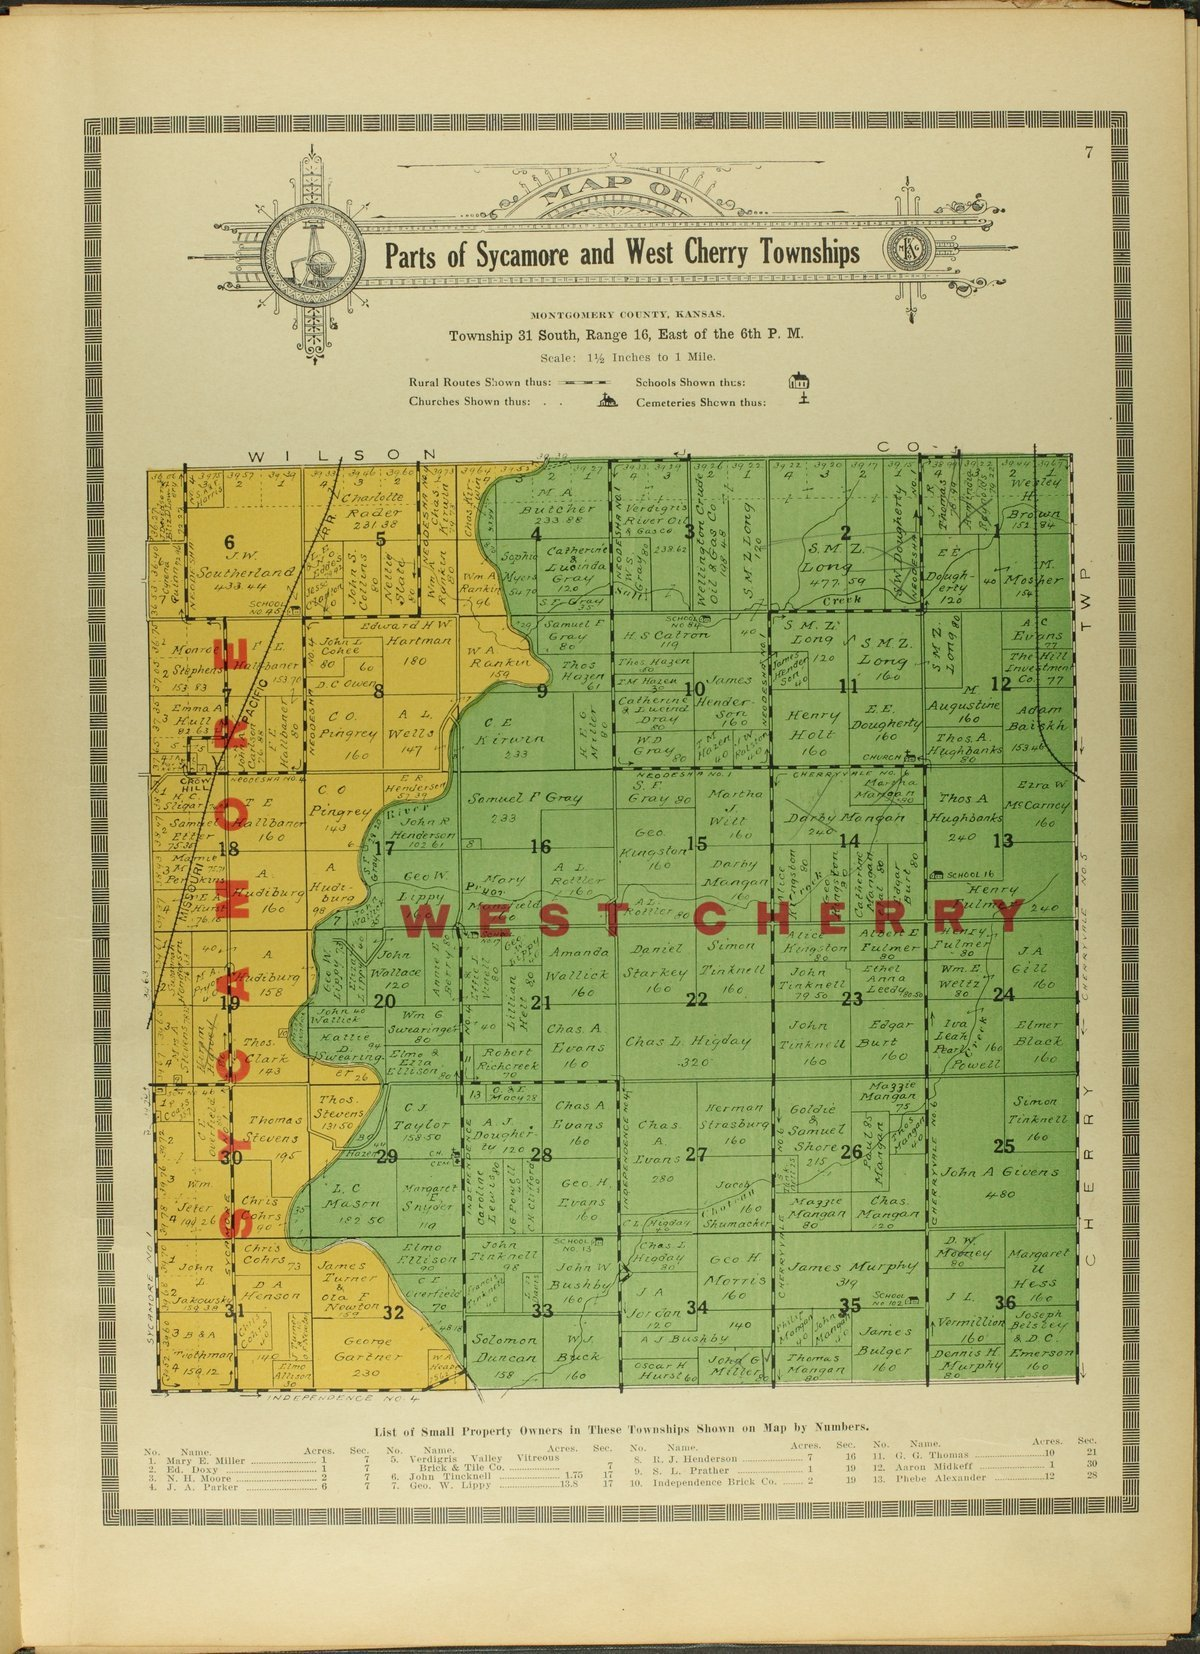 Atlas and plat book of Montgomery County, Kansas - 7